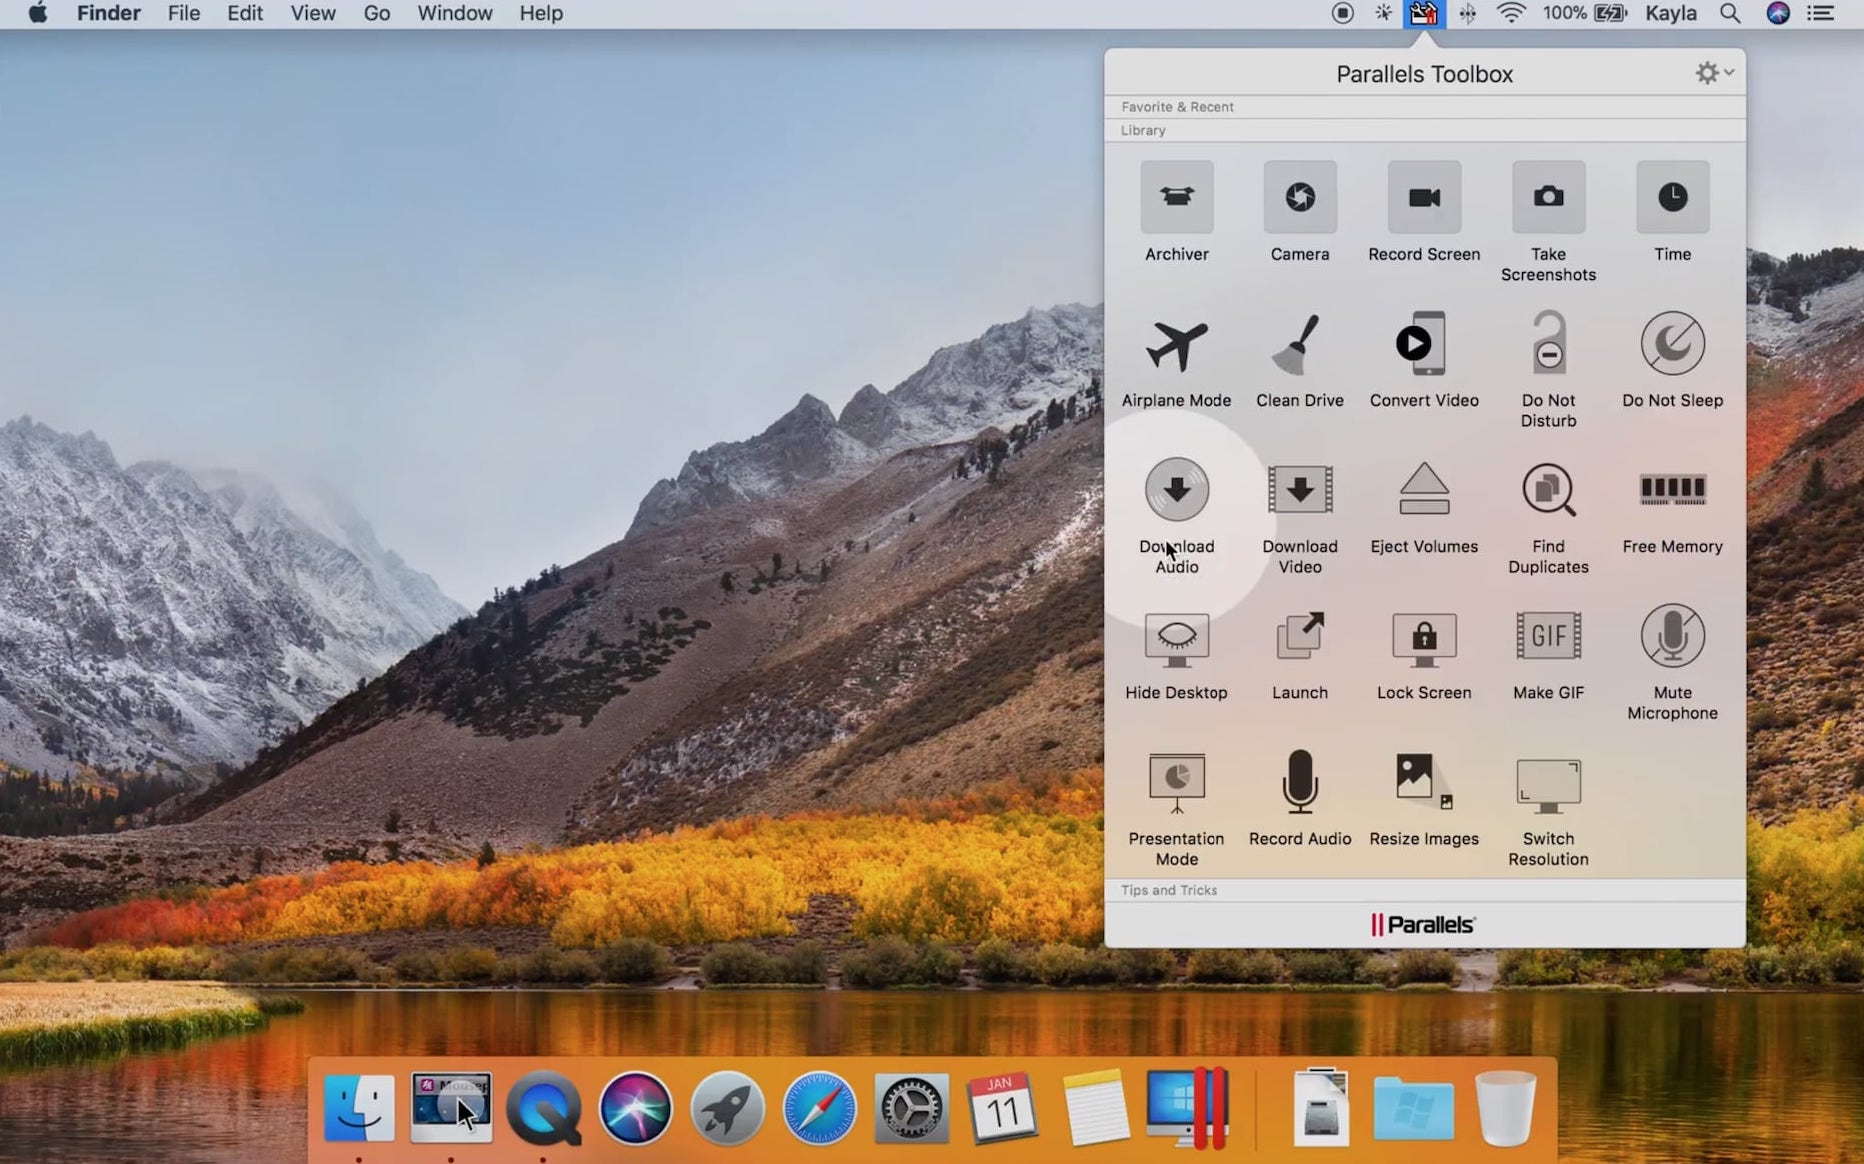 Parallels Toolbox Packs